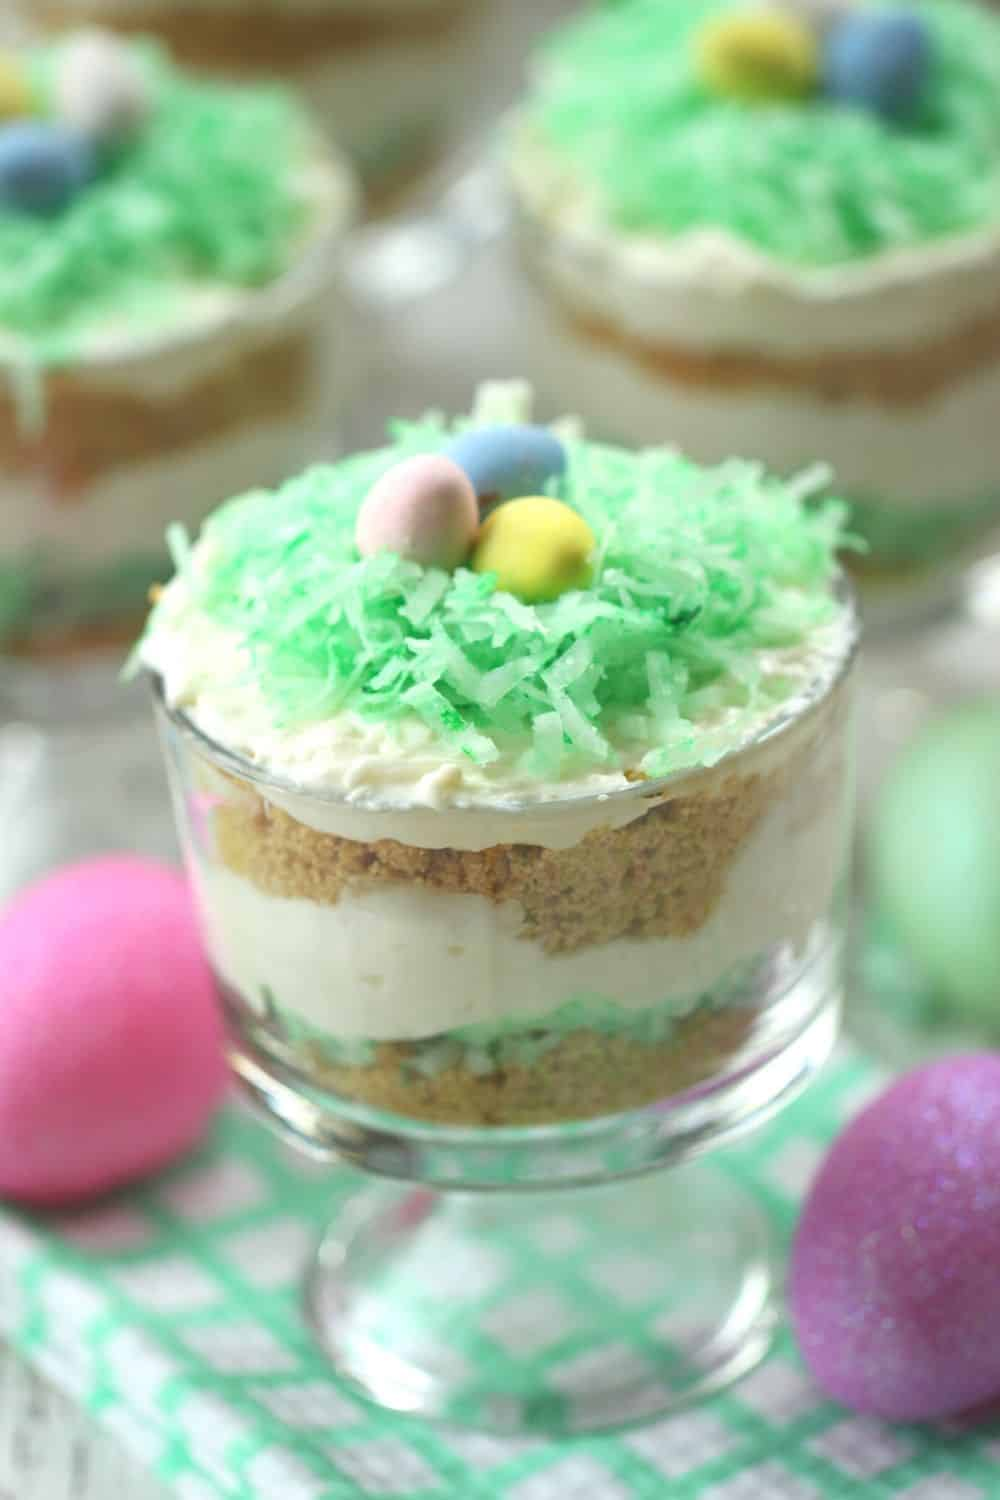 These colorful No Bake Coconut Cheesecake Parfaits are a sweet way to welcome spring. They are a perfect Easter dessert recipe for your holiday celebration. This no-bake dessert recipe can be served in mason jars or parfait dishes. This easy holiday dessert recipe can also be made ahead of time. #nobakedessert #masonjarrecipe #easterdessert #cuteeasterdessert